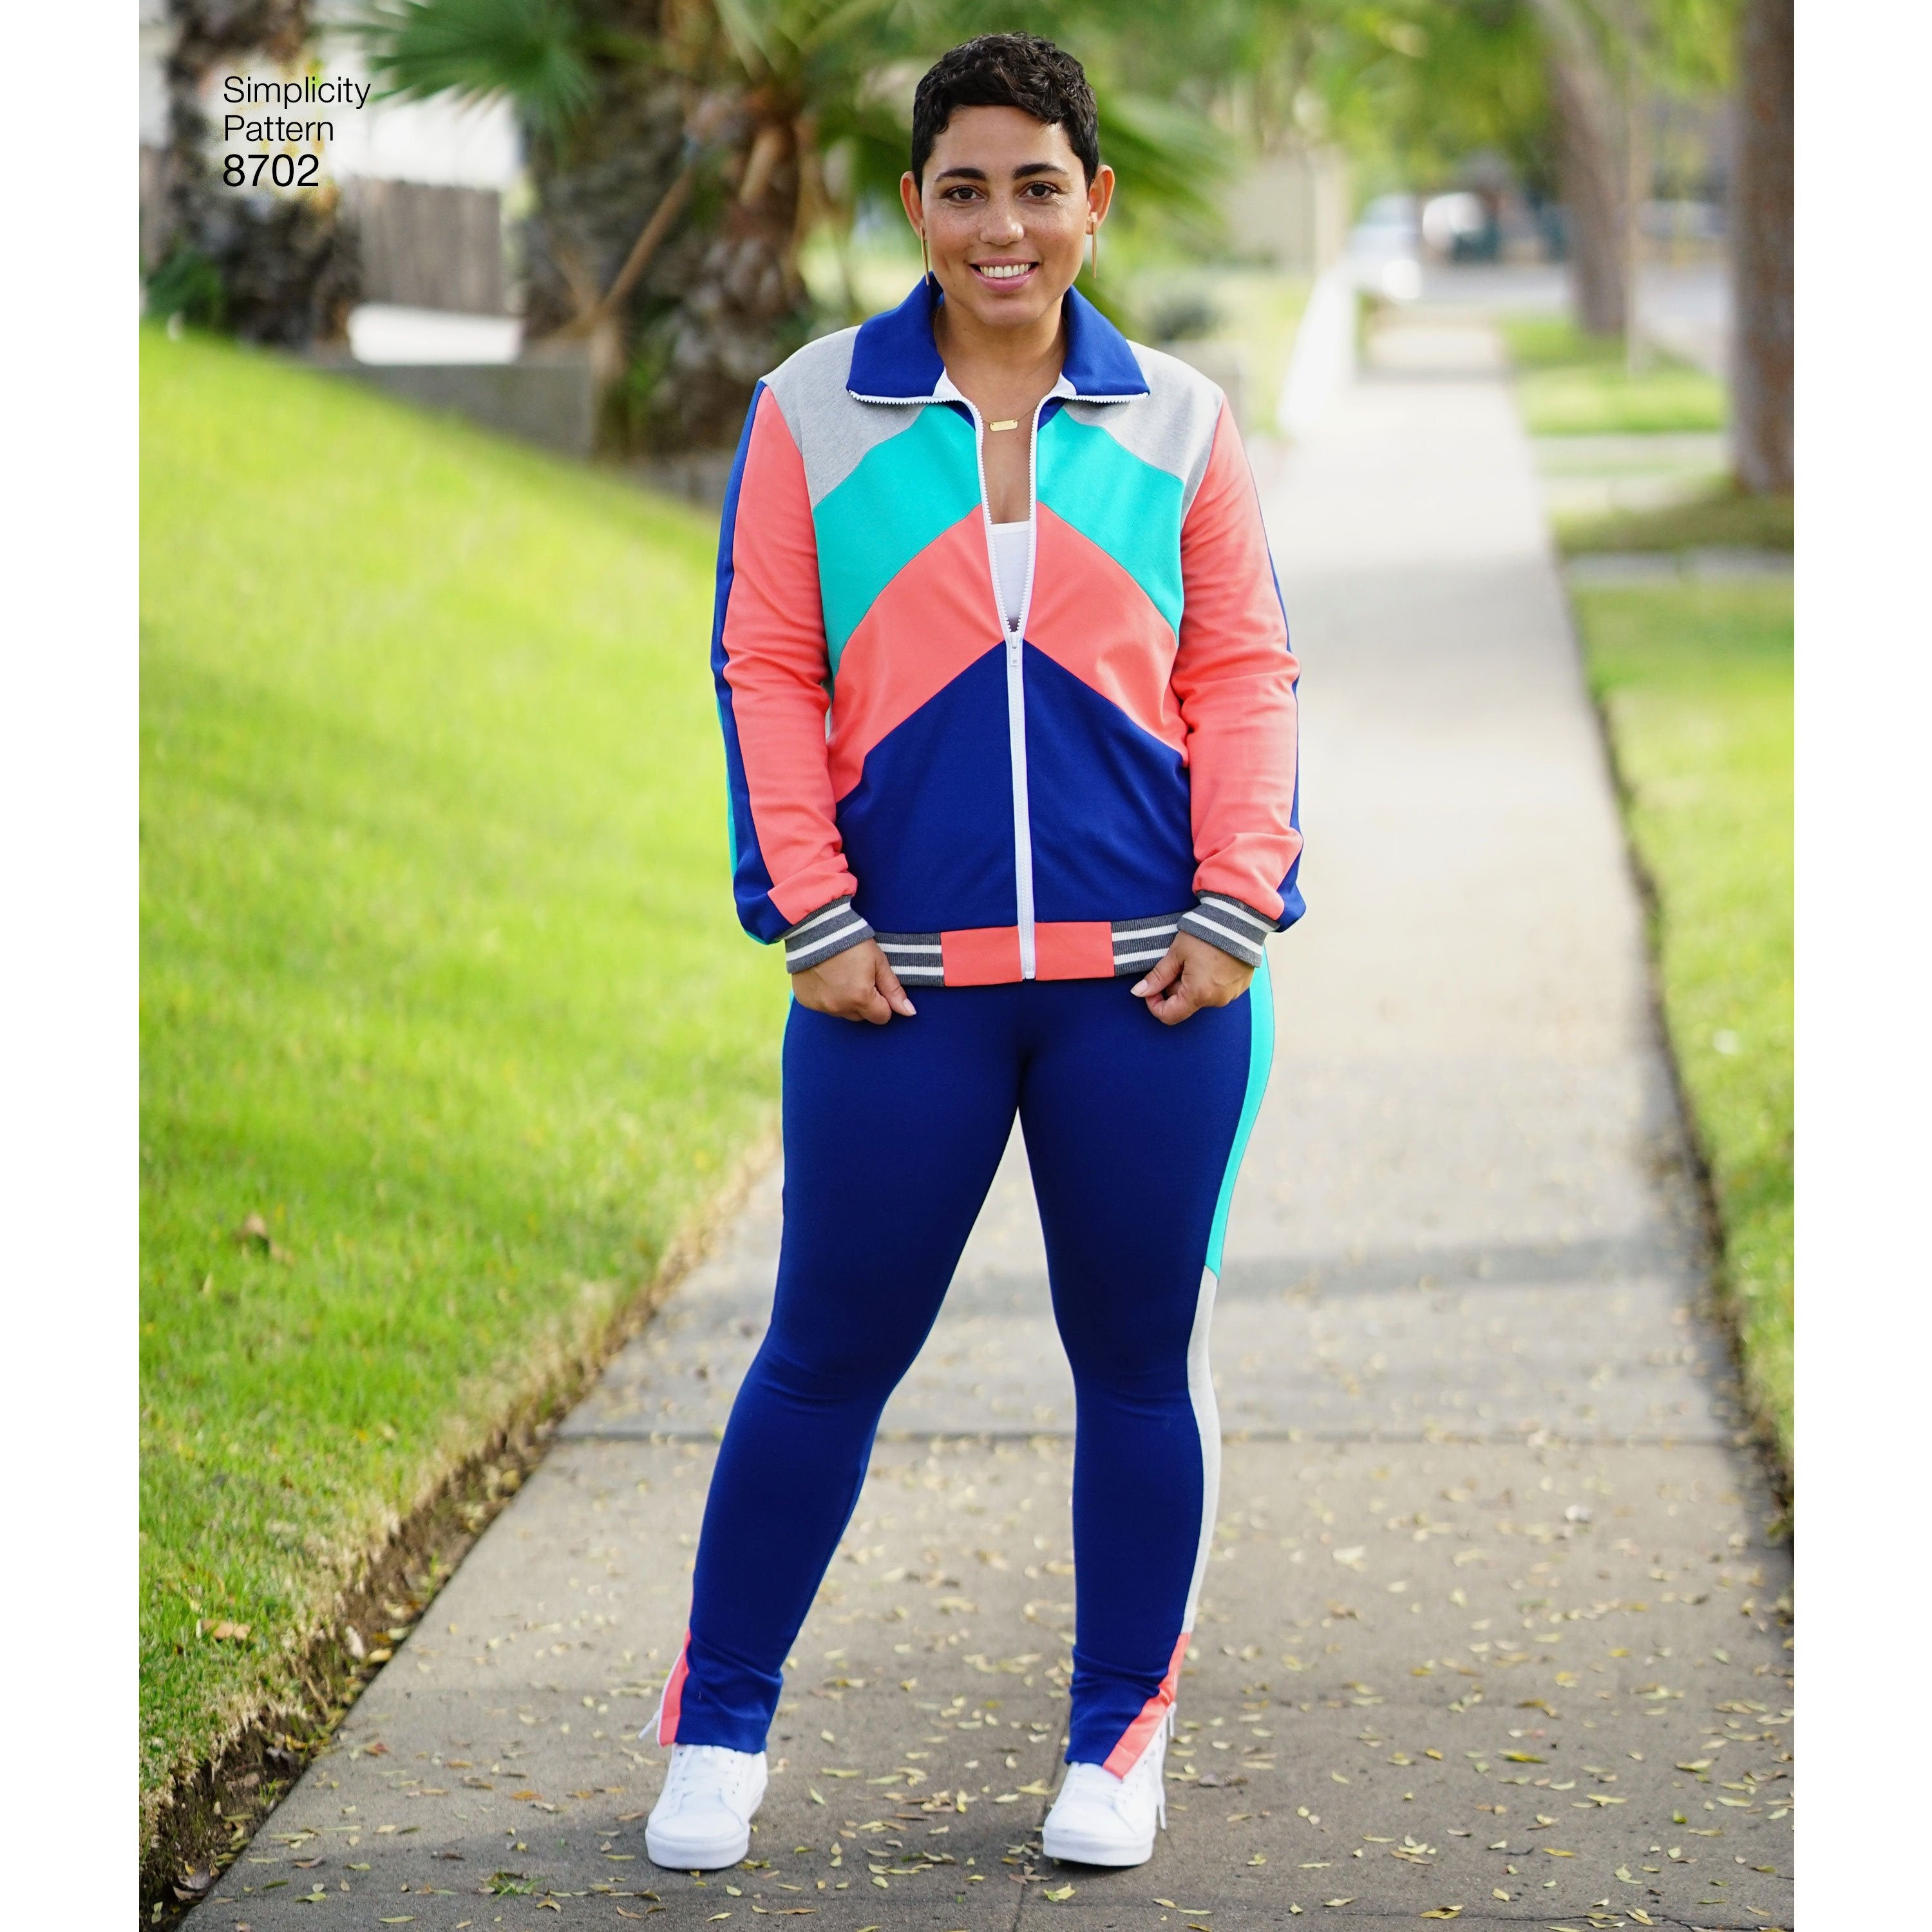 S8702 Mimi G Athleisure Sewing Pattern